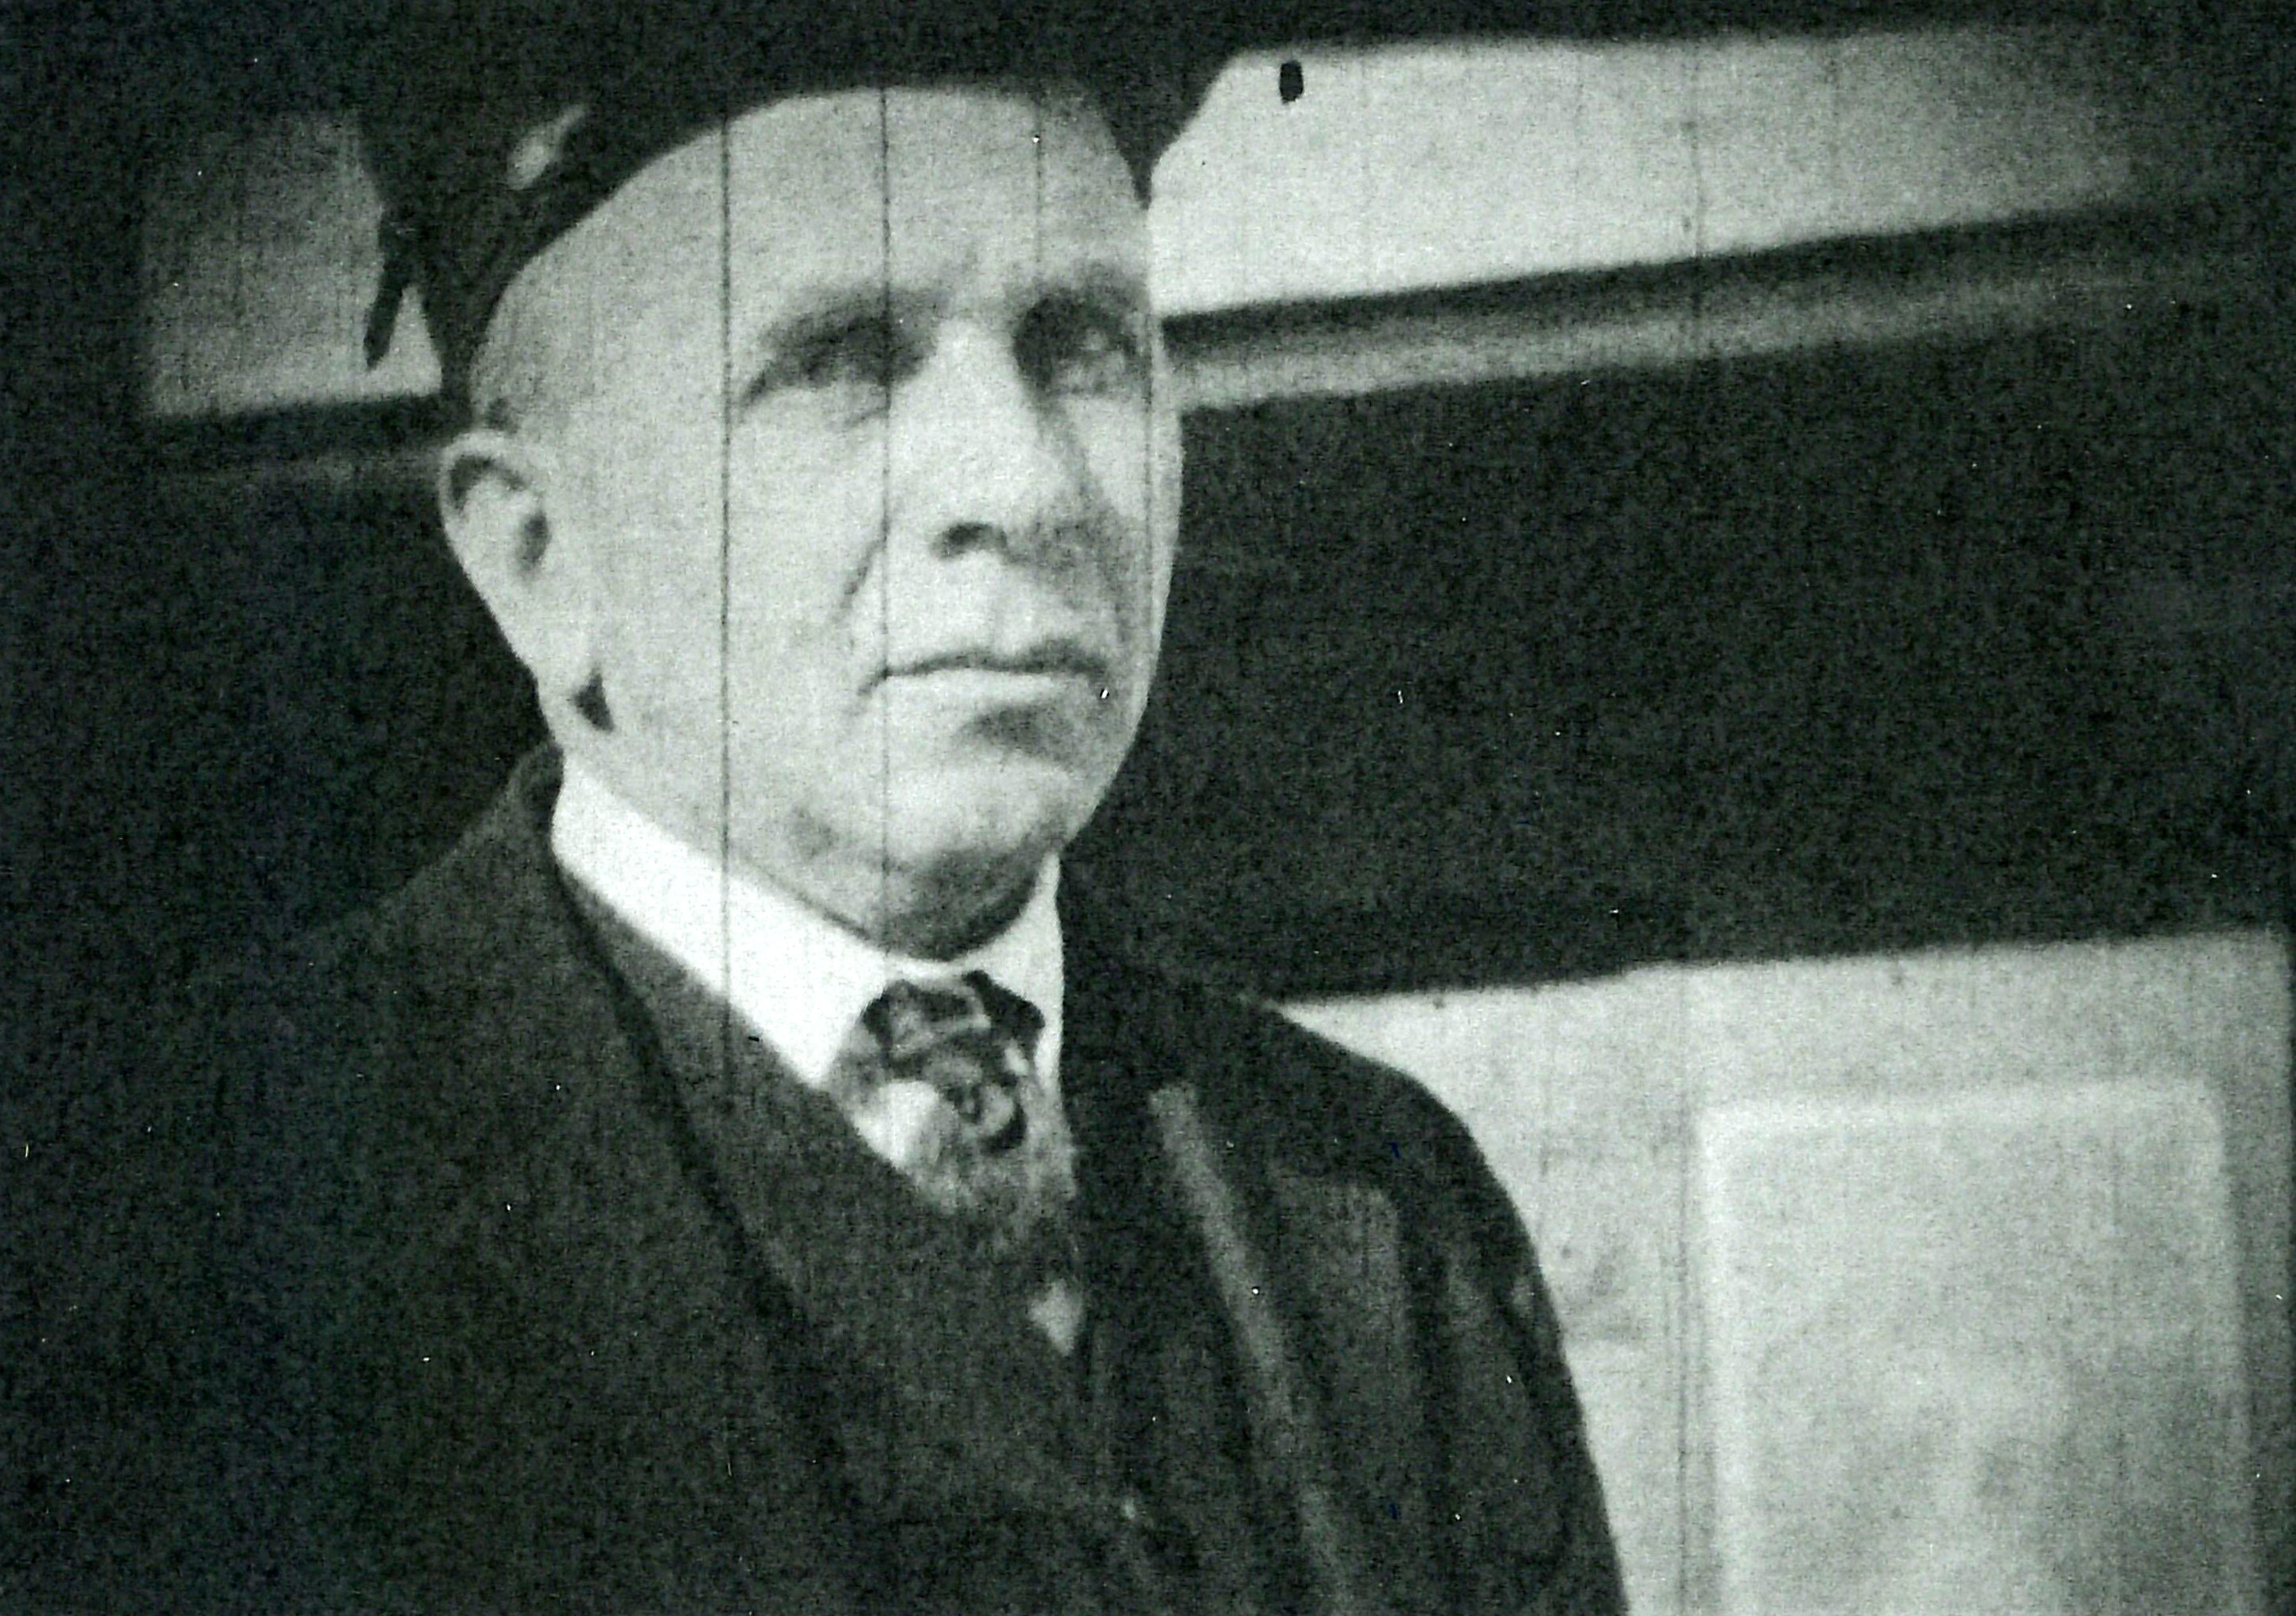 Still image of Forrest Gillingham taken from film by Oscar Polhemus, circa 1930.